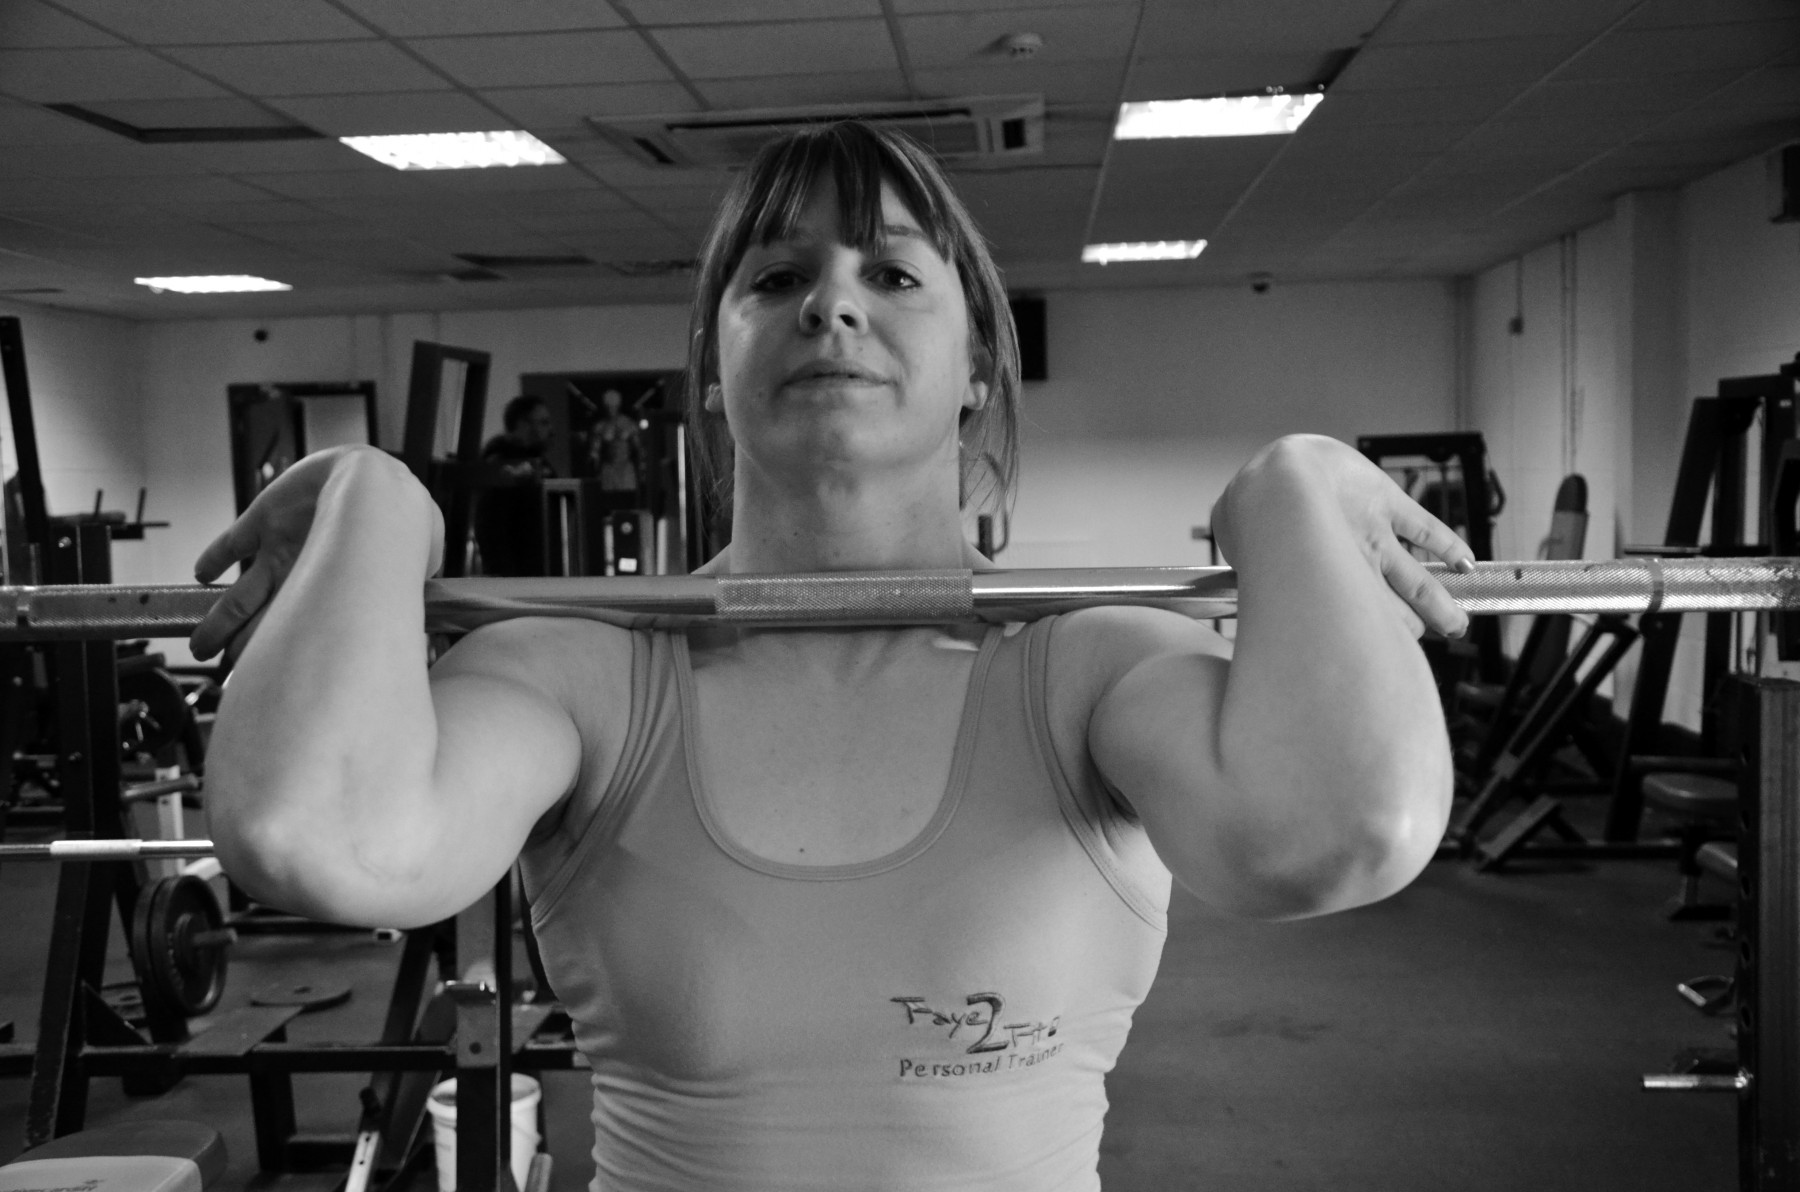 Faye2Fit - Personal Training